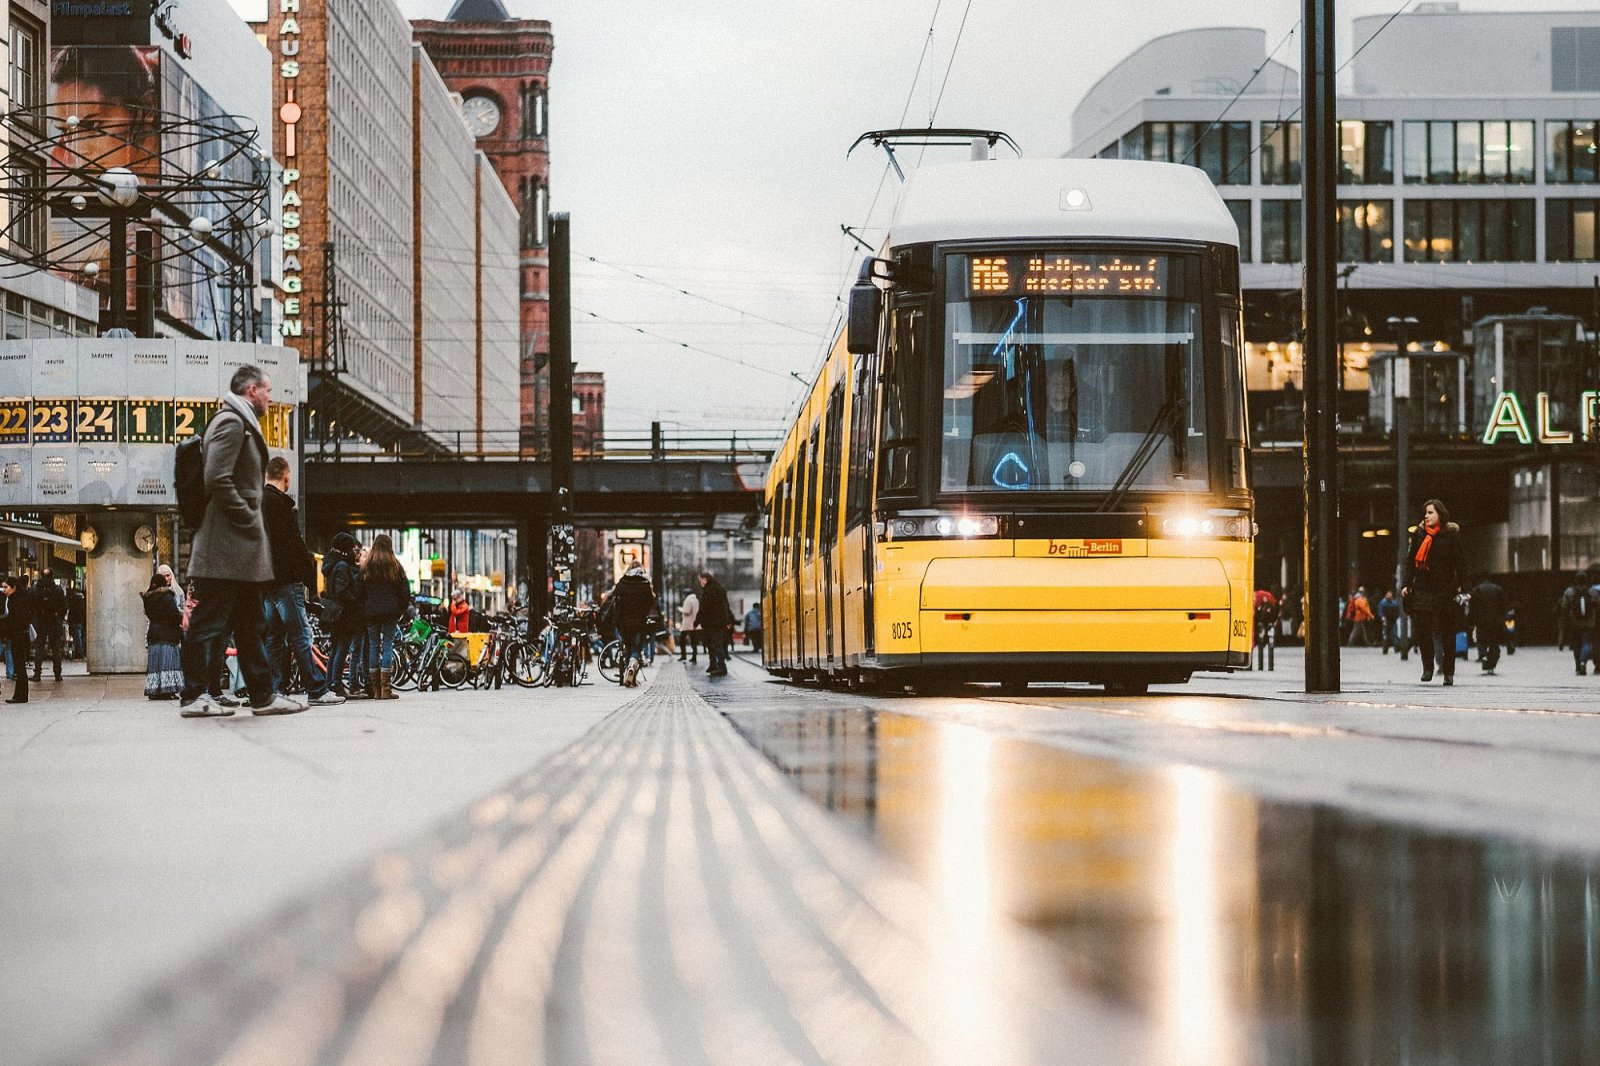 Trams in Berlin